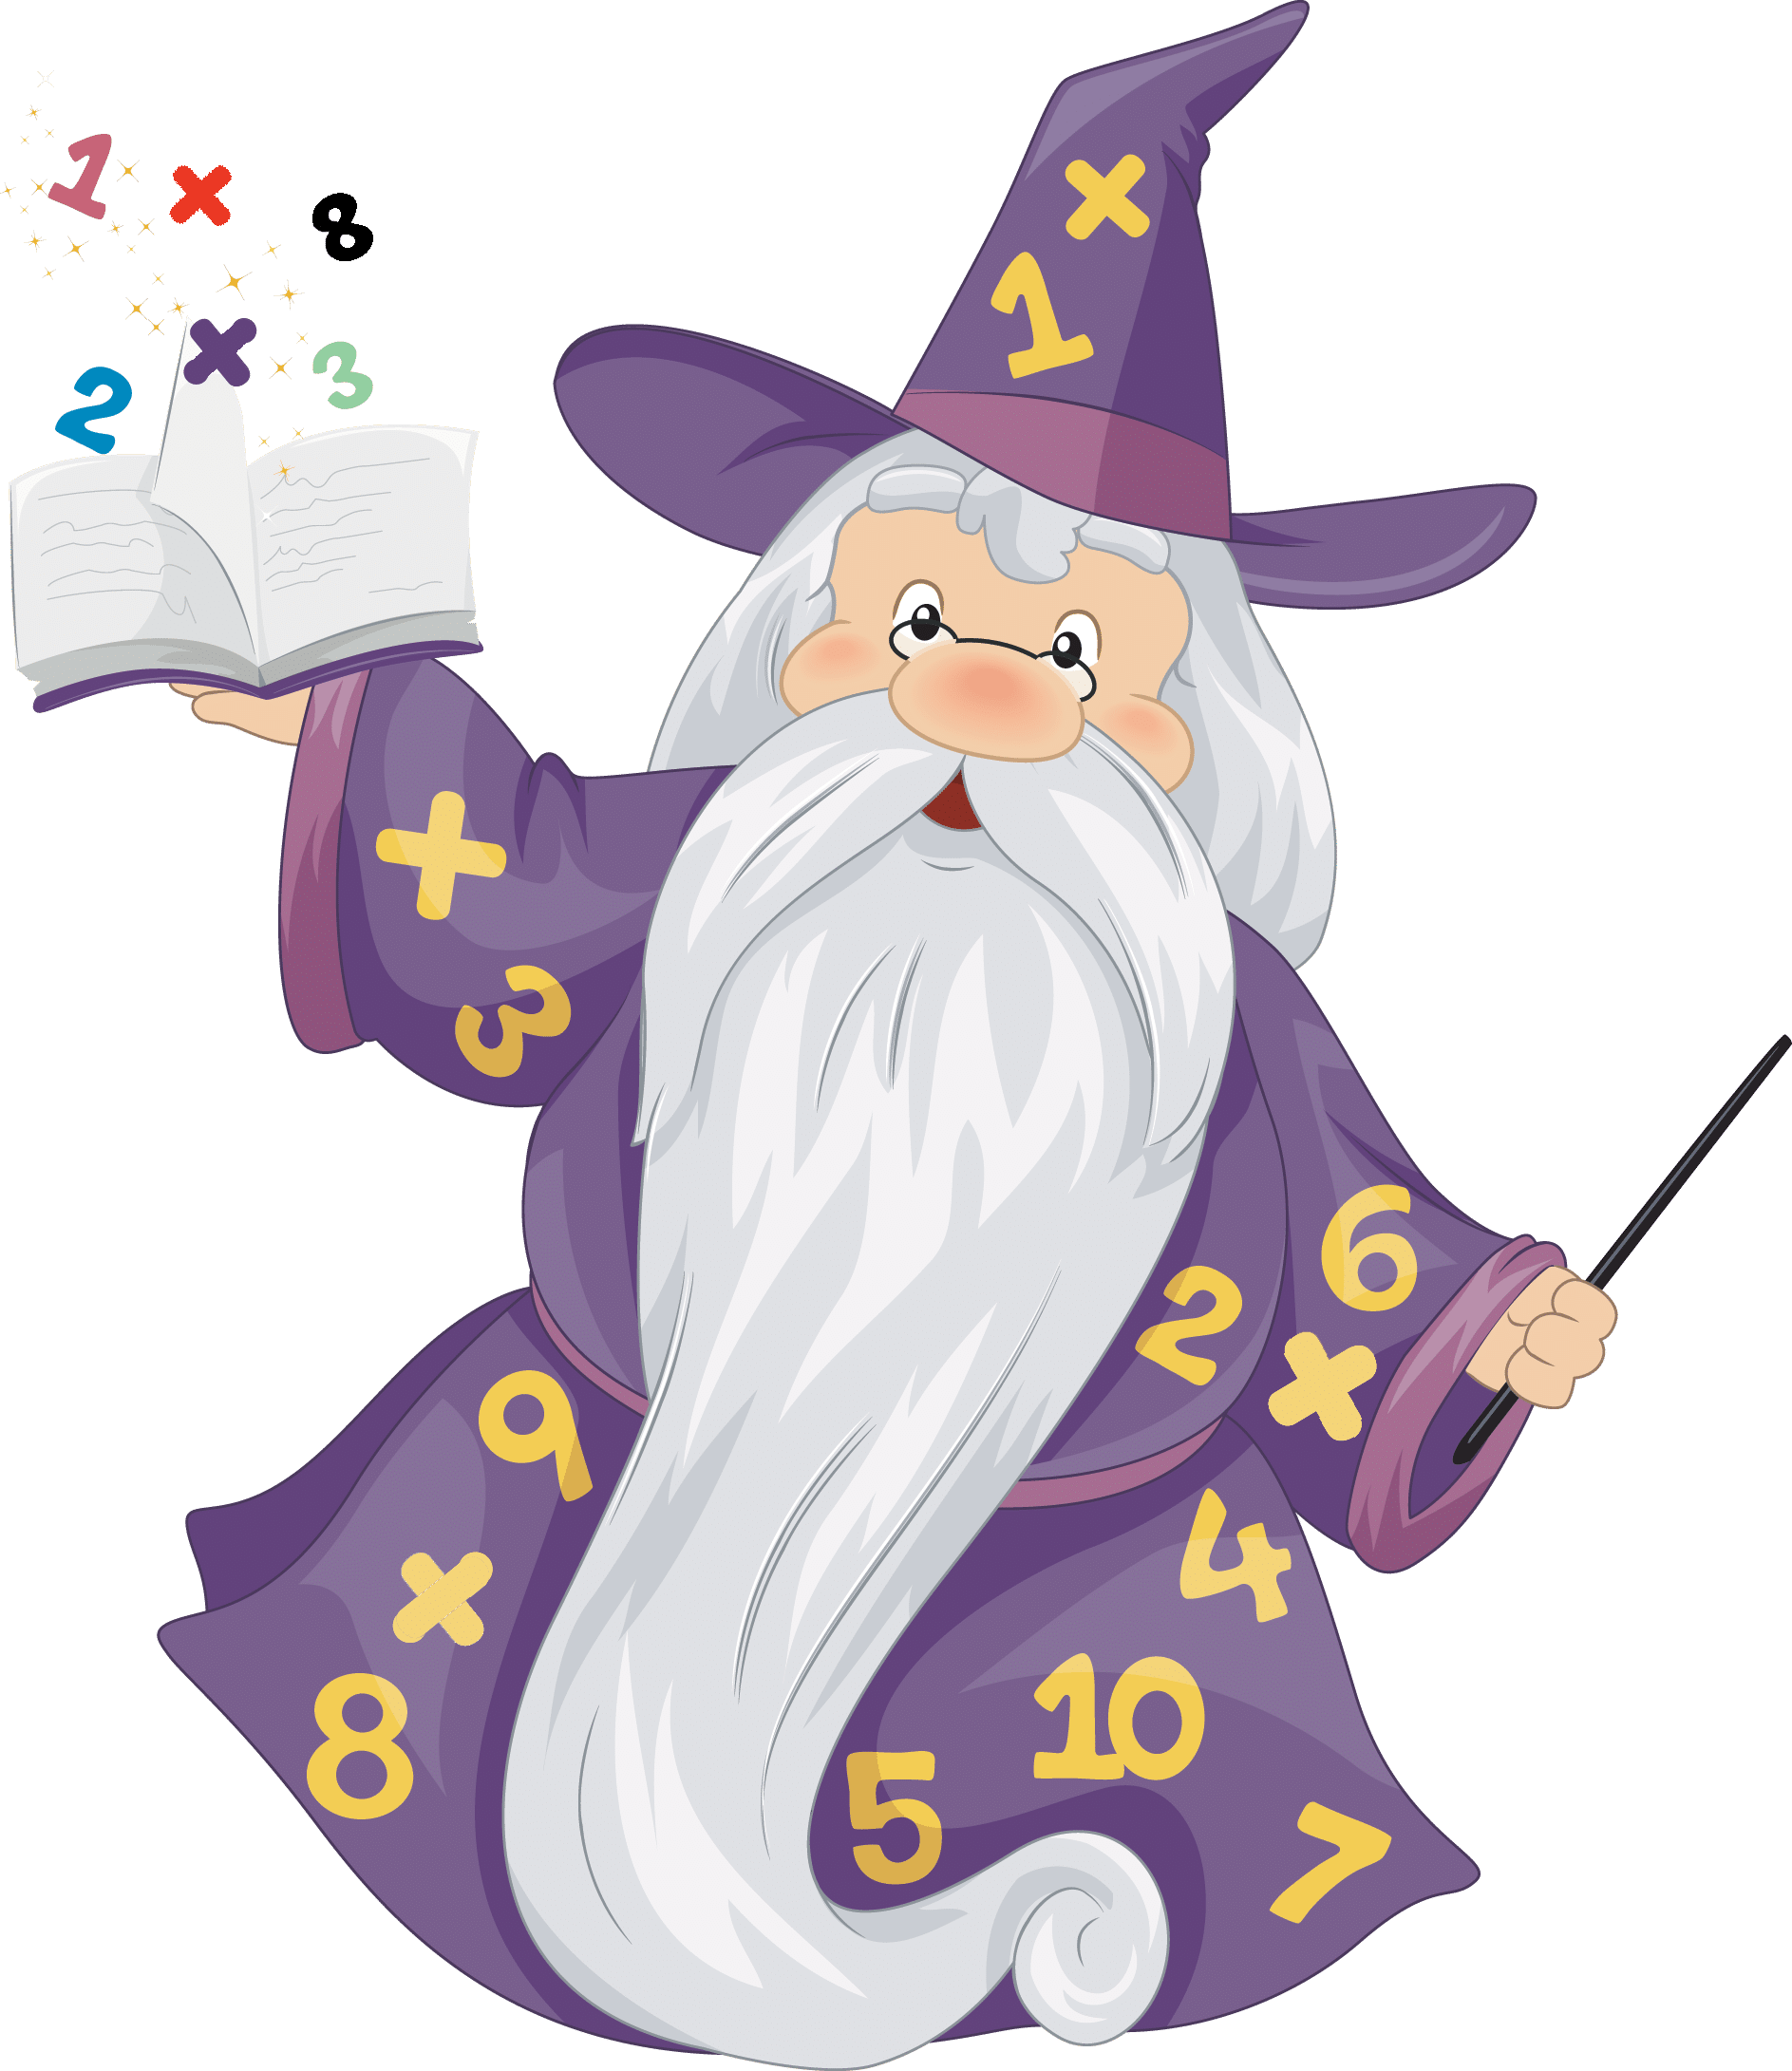 Times Tables Wizard 101 - 360 pupils